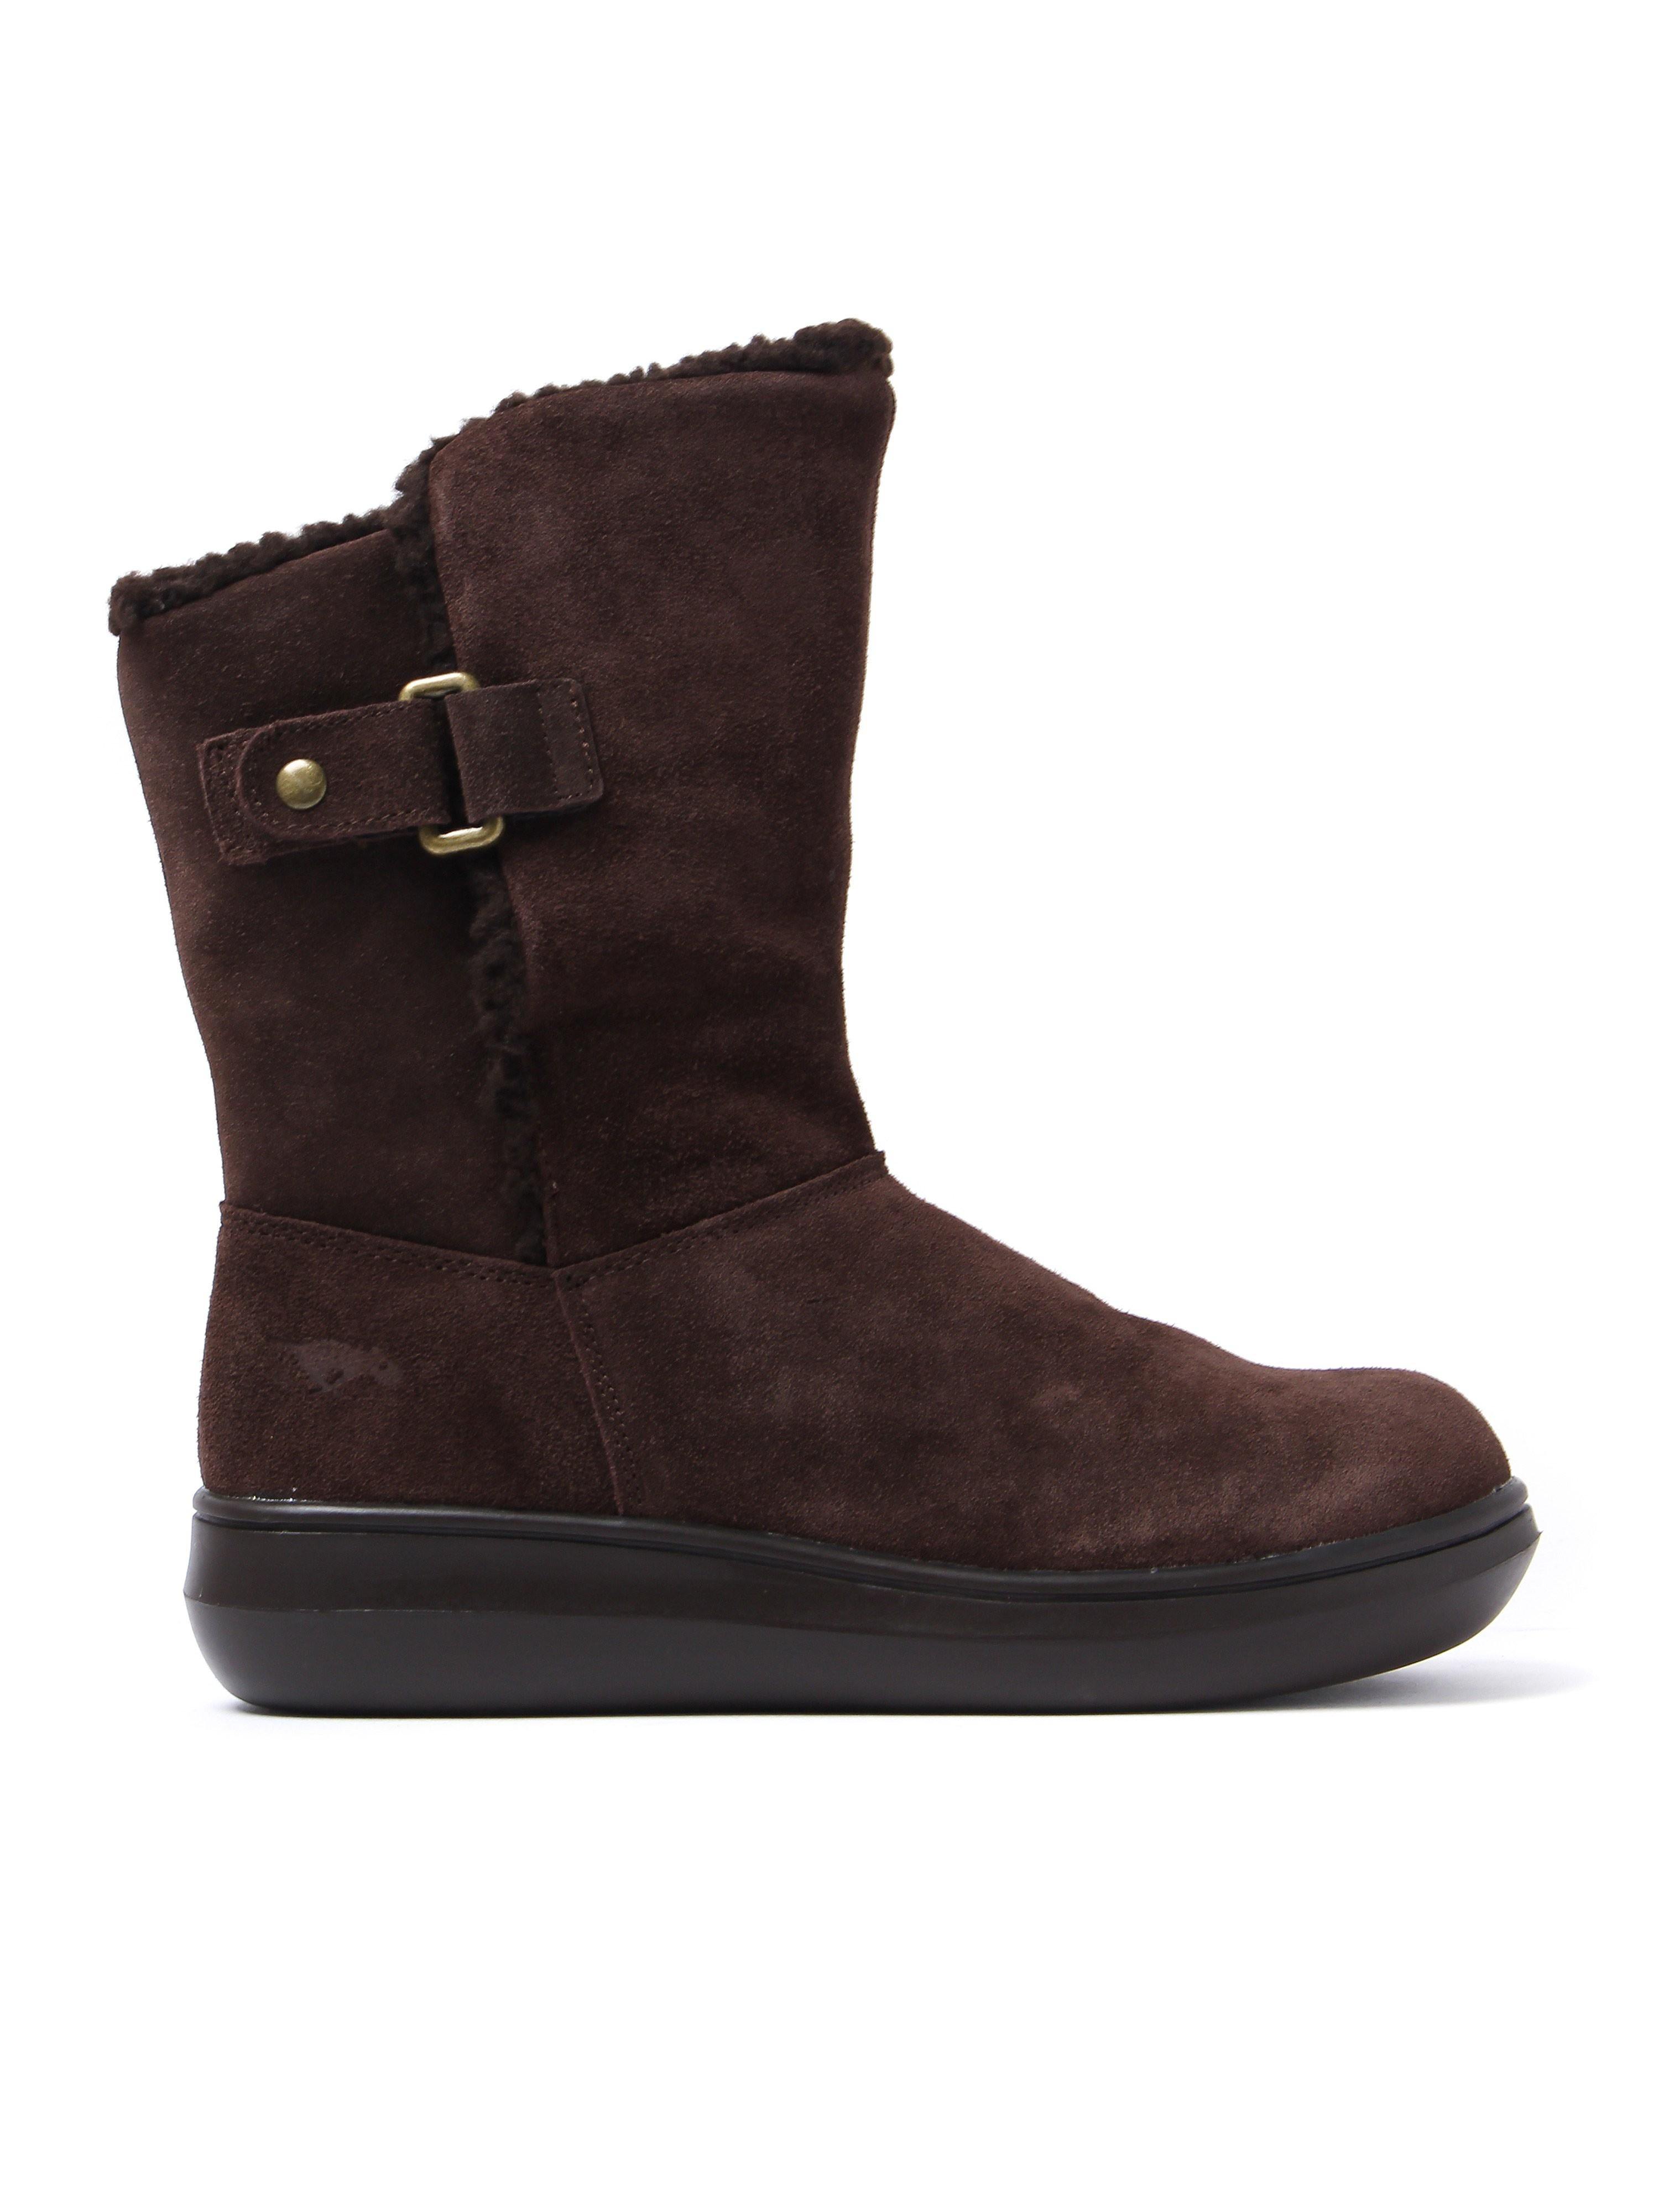 Rocket Dog Women's Staples Boots - Tribal Brown Suede